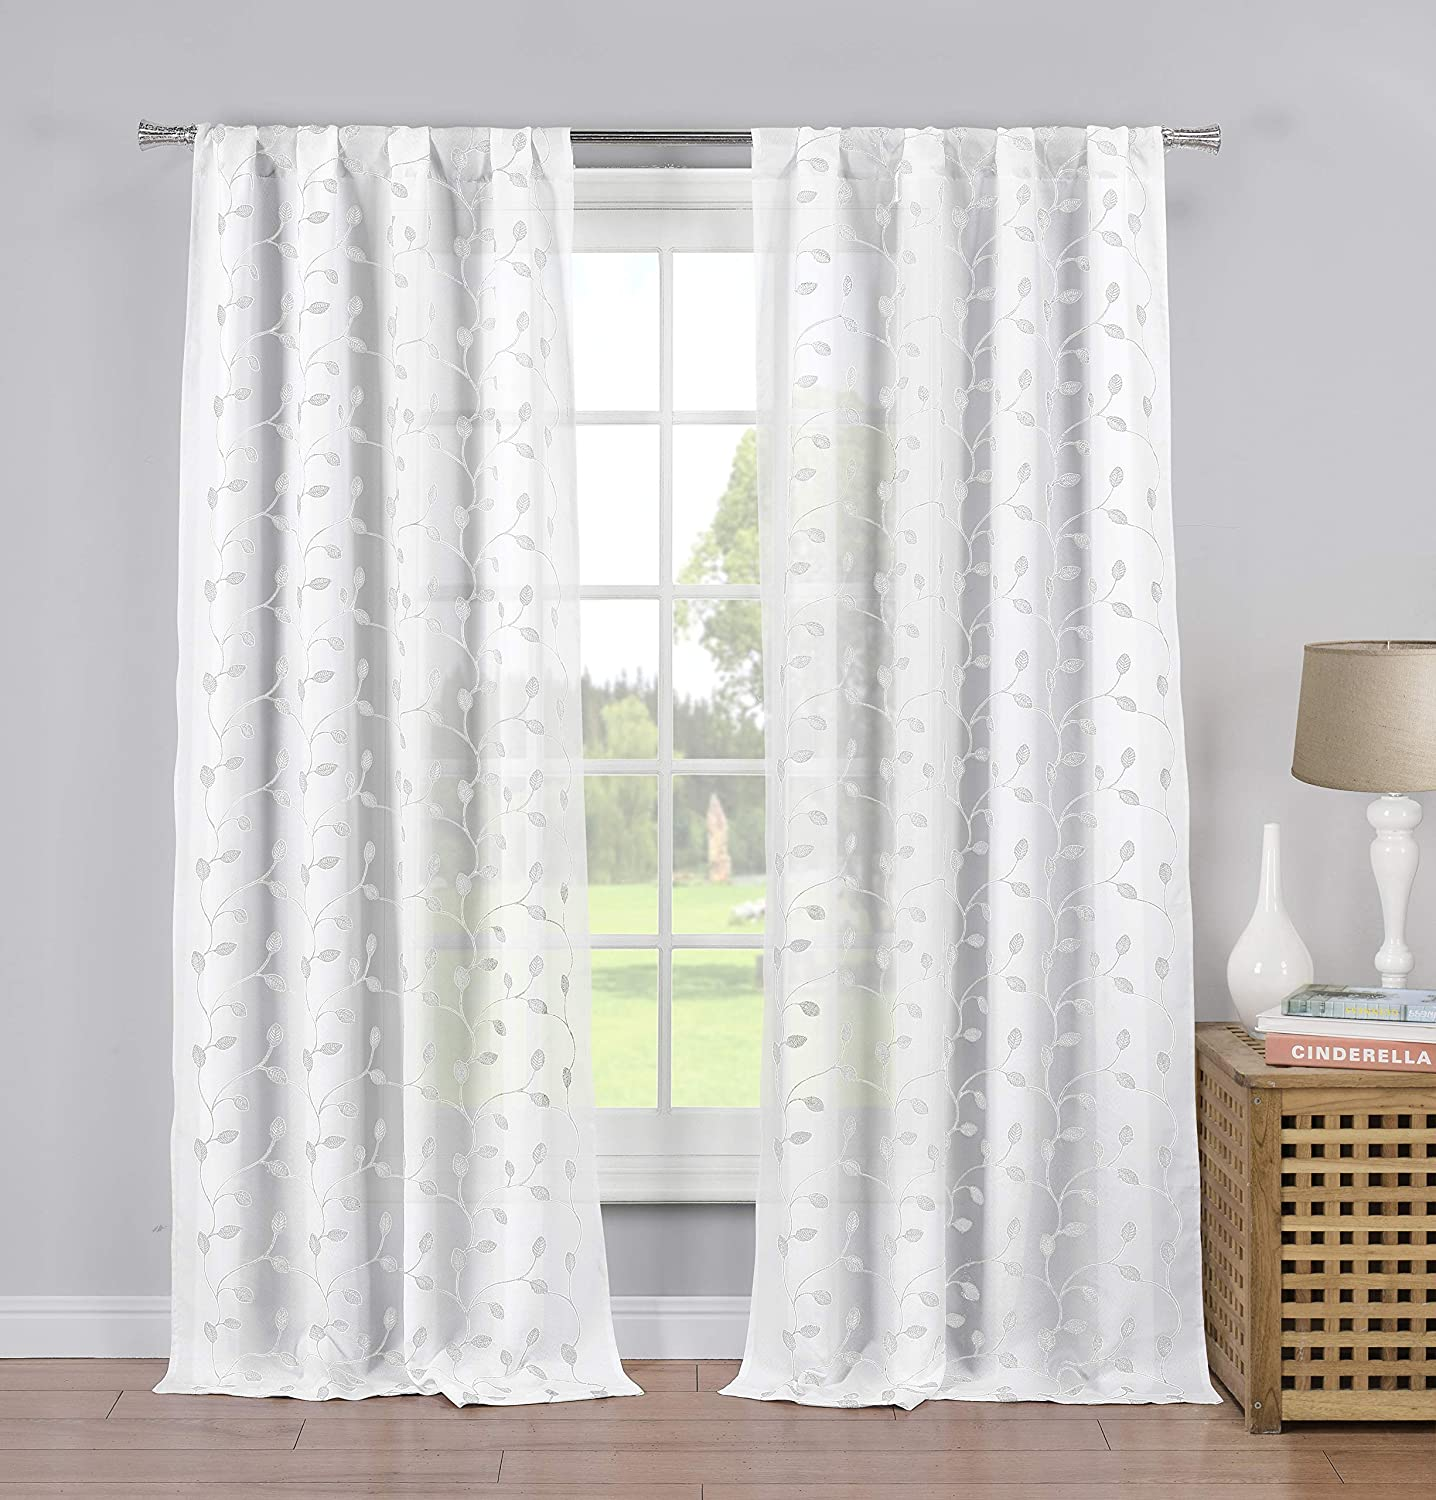 Home Maison Kira Leaf Window Curtain, 36X63, White-Silver